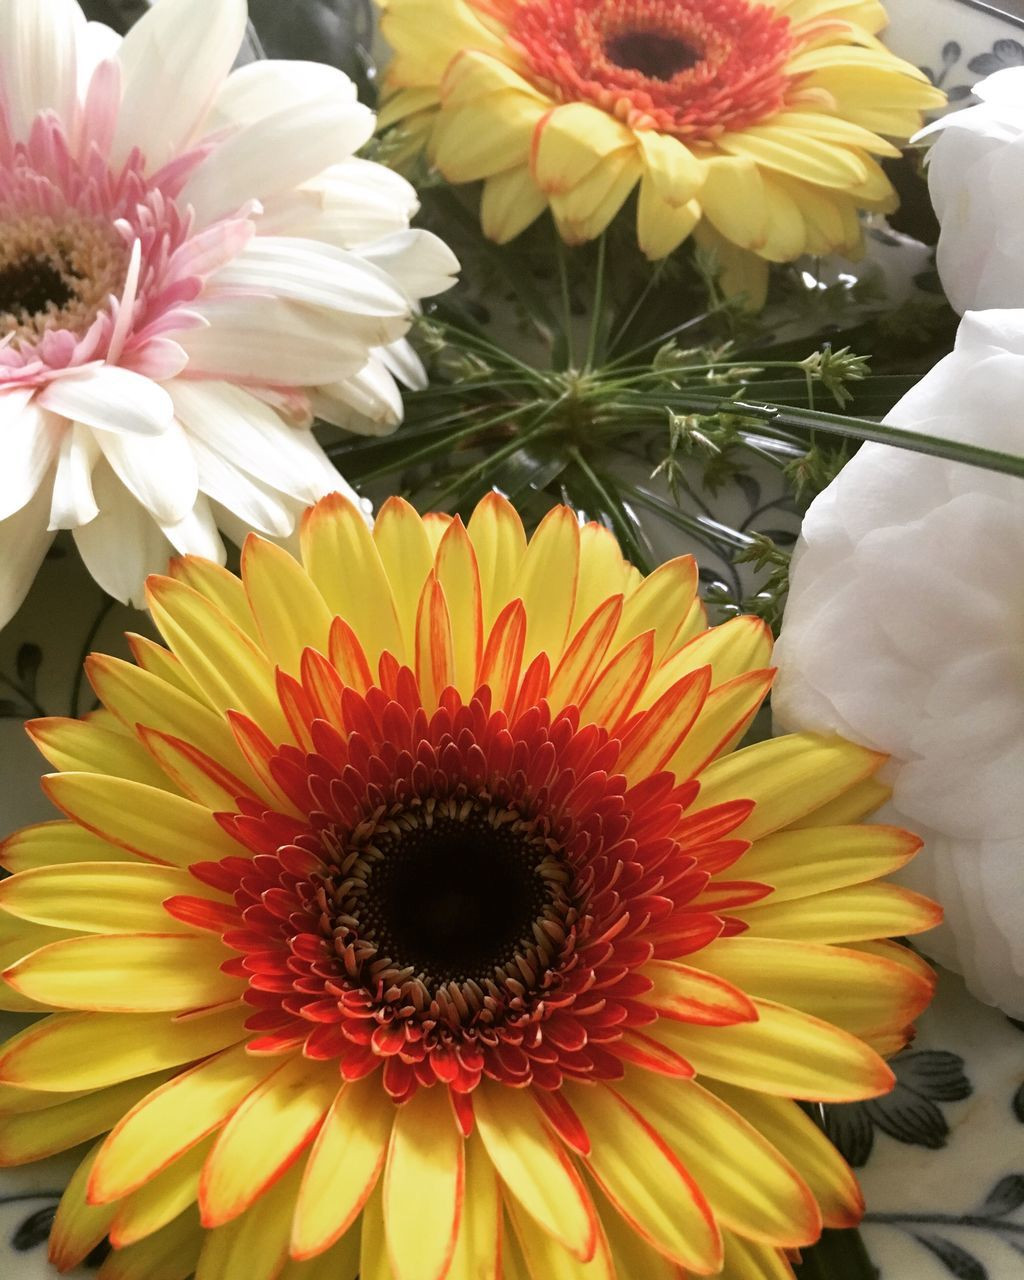 flower, petal, fragility, flower head, freshness, beauty in nature, close-up, nature, pollen, no people, growth, day, outdoors, blooming, backgrounds, gerbera daisy, chrysanthemum